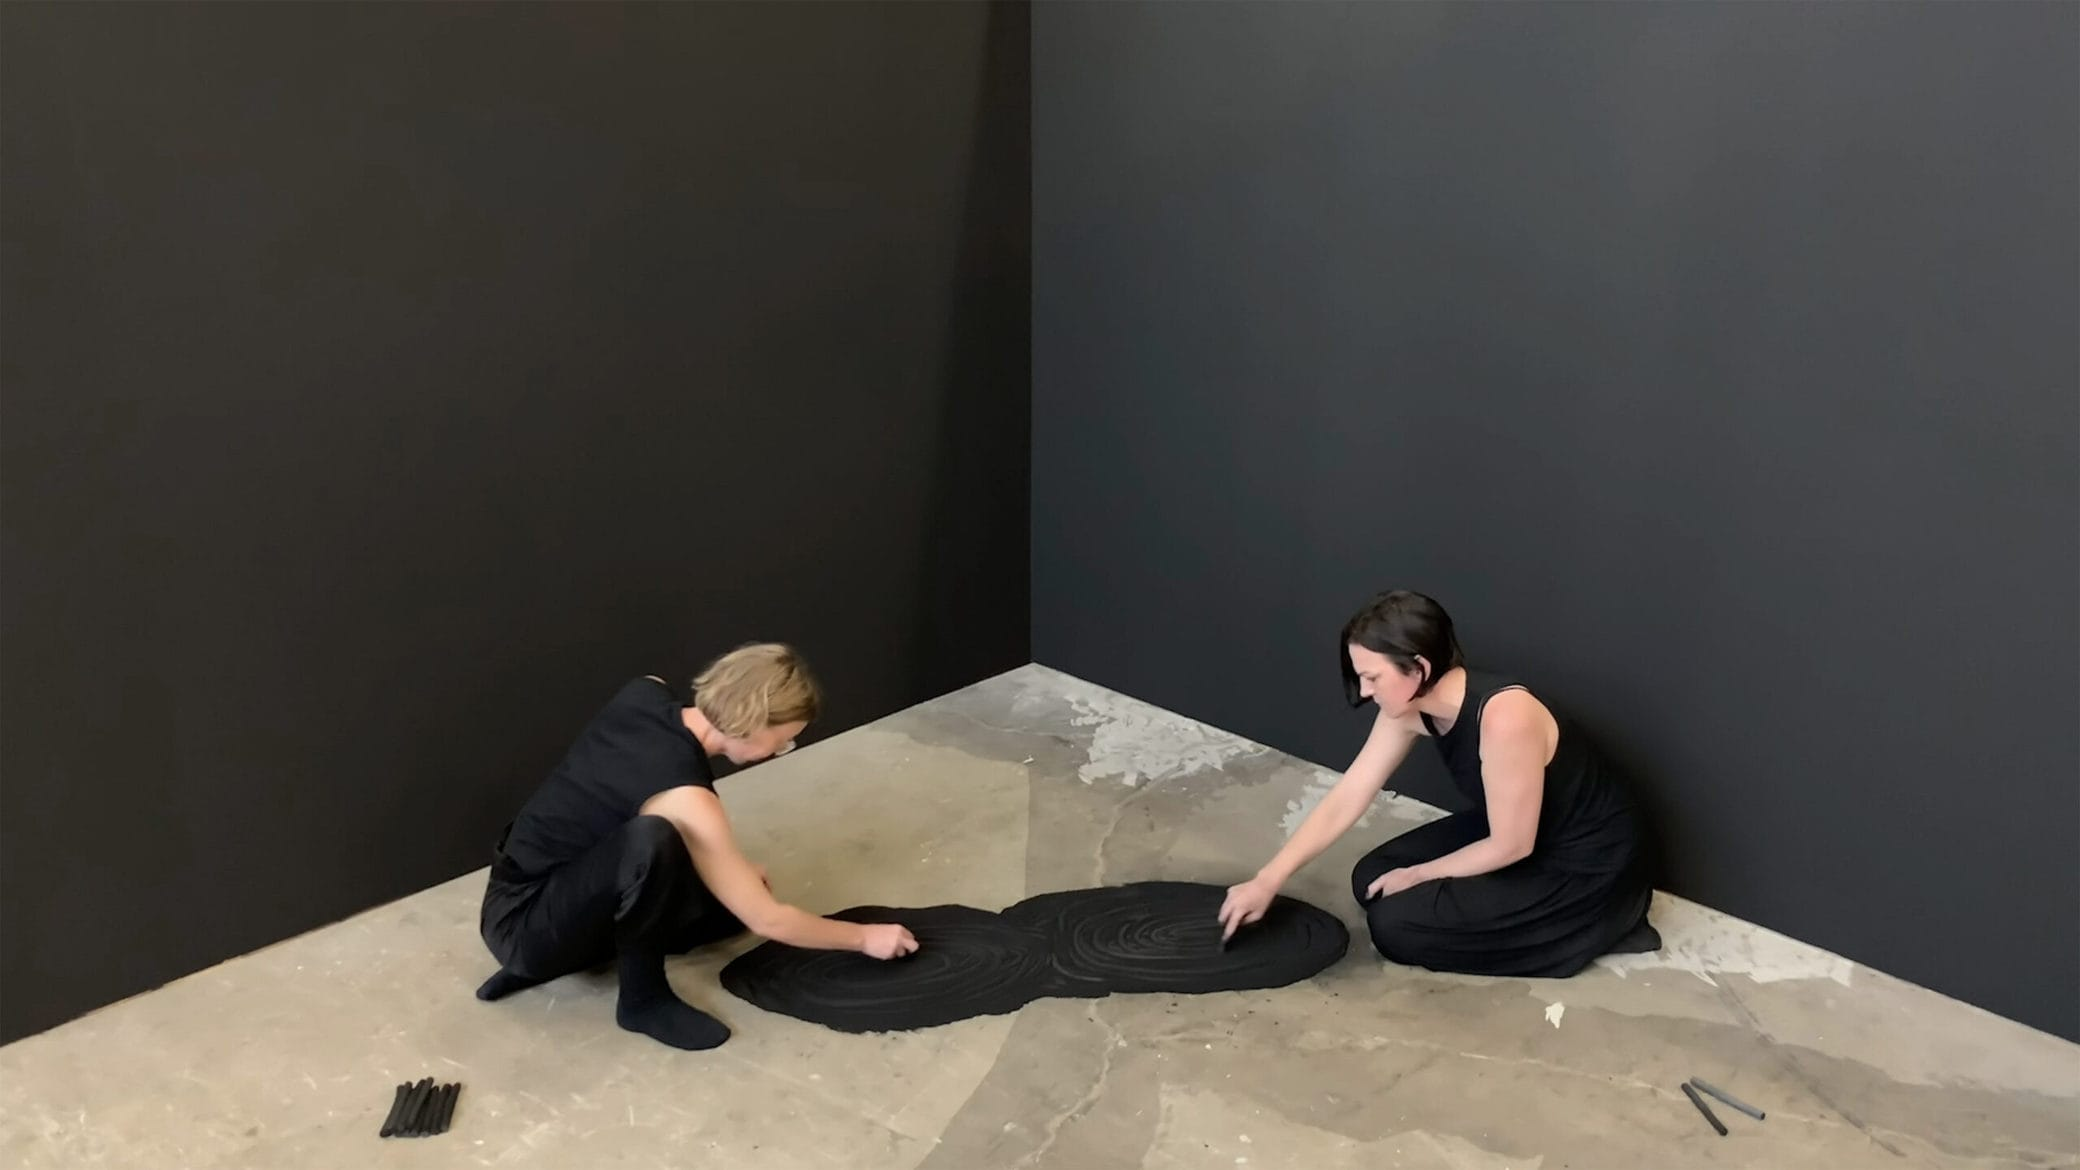 Emma Fielden, 'Andromeda and The Milky Way', 2019, performance with charcoal, HD video, 5 hours 41 minutes, edition tba. Performed by Emma Fielden and Lizzie Thomson at Parramatta Artists' Studios Rydalmere, commissioned by Parramatta Artists' Studios.